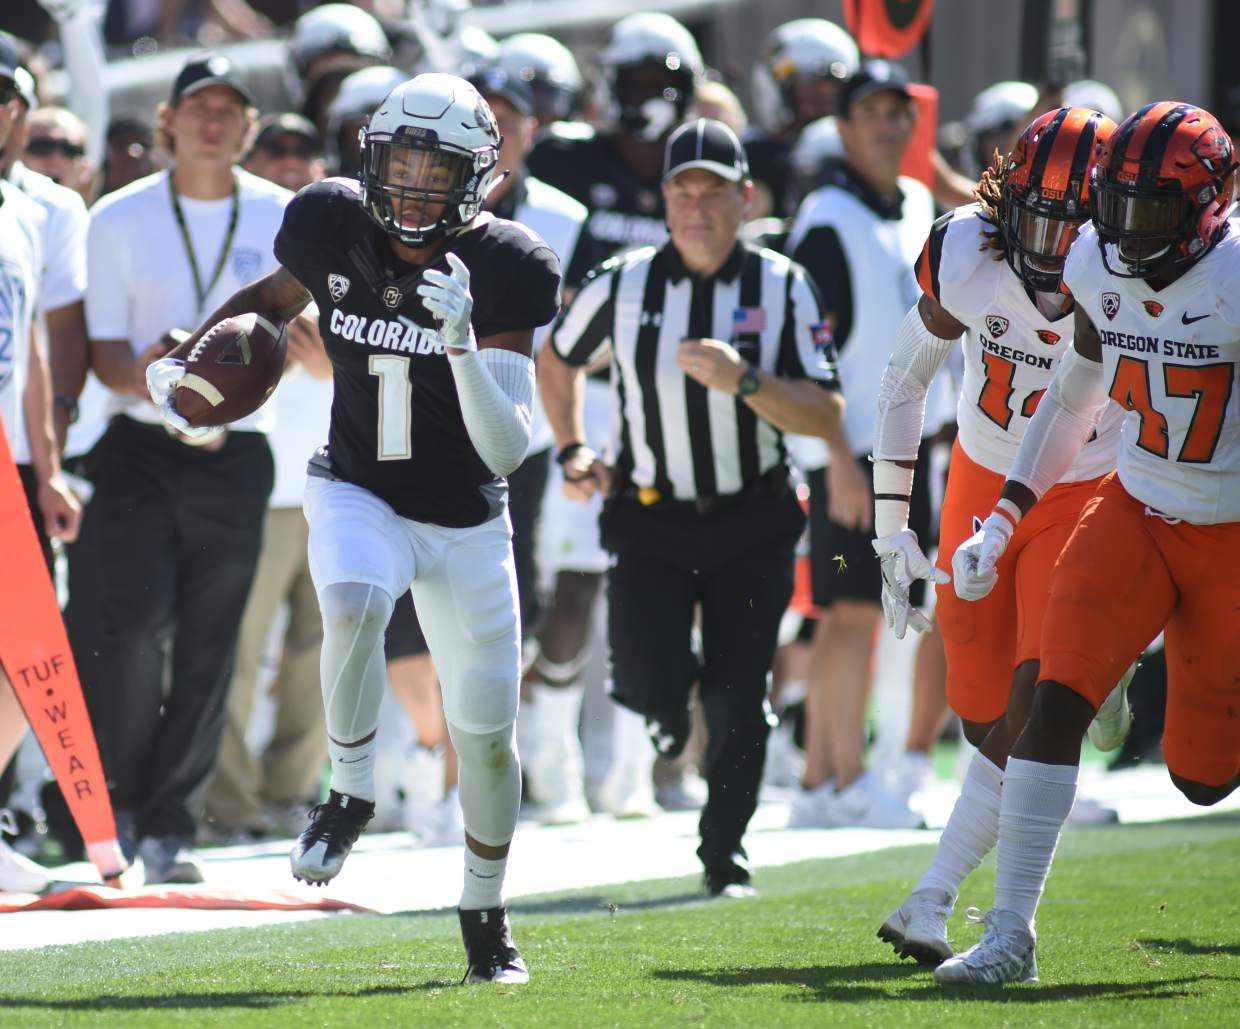 Colorado's Shay Fields runs for his third touchdown against Oregon State during an NCAA college football game Saturday, Oct. 1, 2016, in Boulder, Colo. (Cliff Grassmick/Daily Camera via AP)